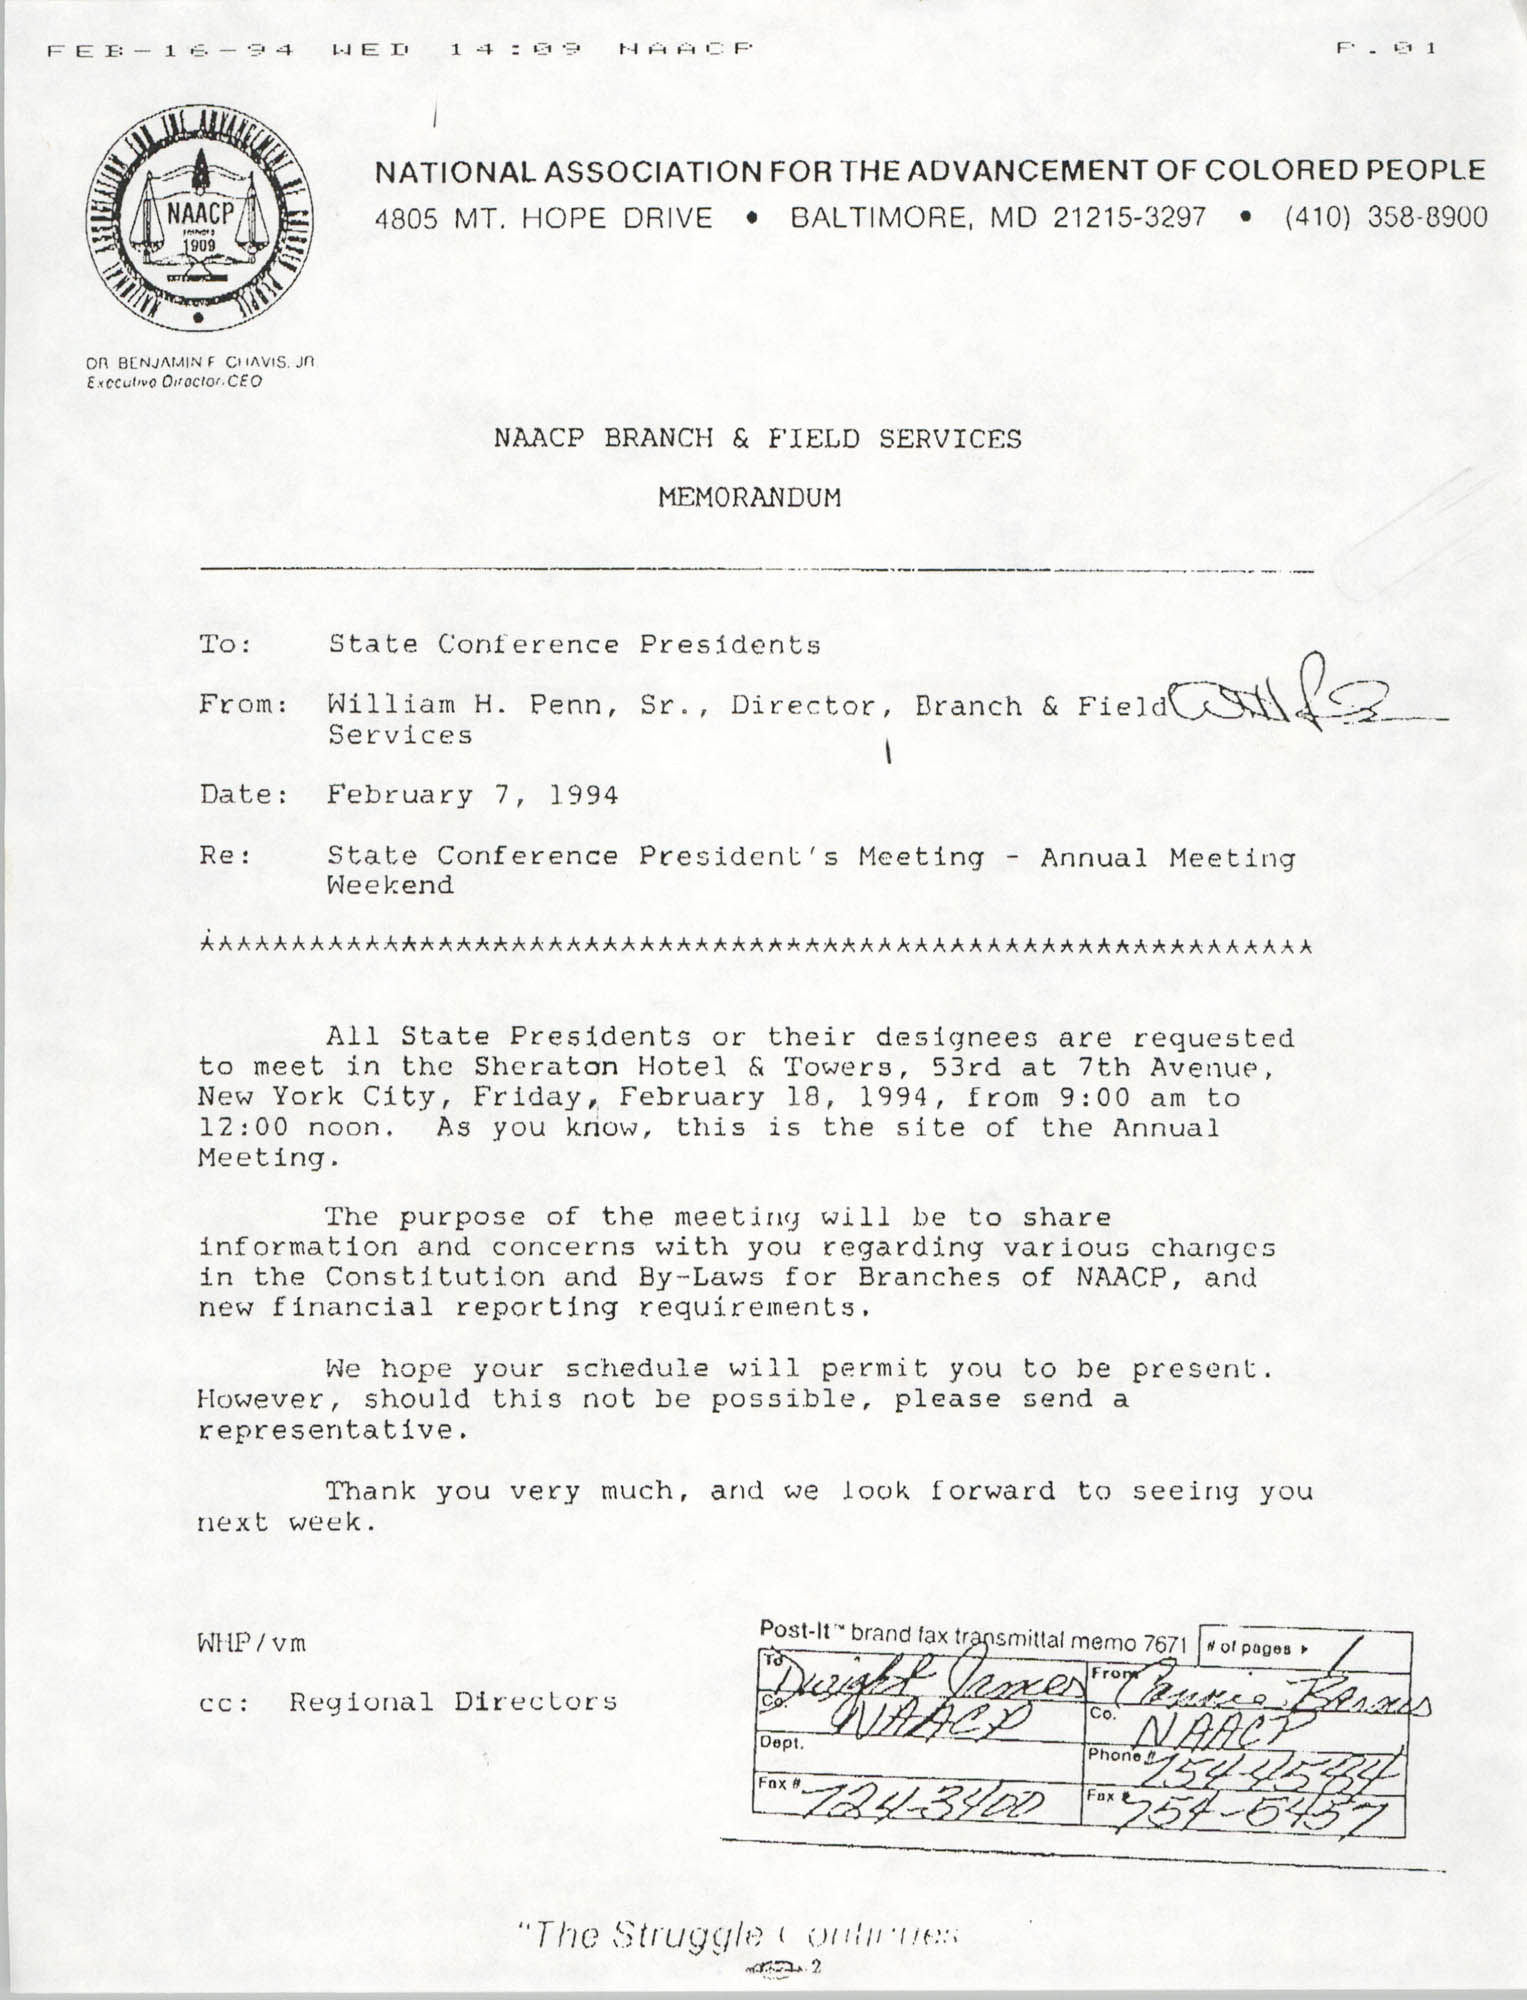 NAACP Memorandum, February 7, 1994